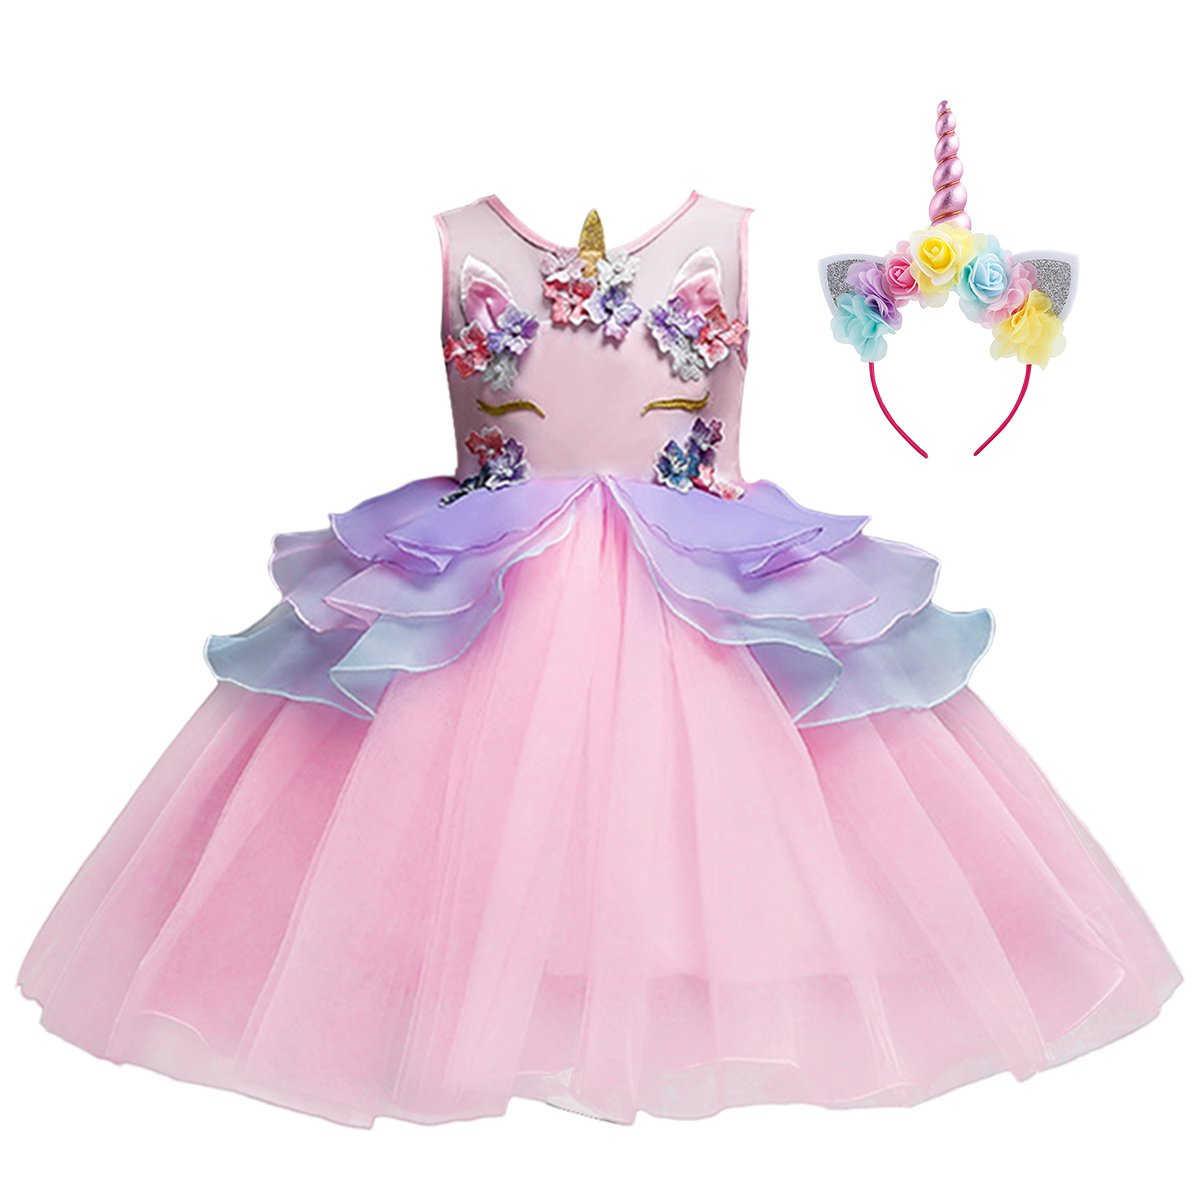 31a0e04ed3a5e Baby Kids Girls Toddler Unicorn Dress Sleeveless Princess Tulle Dress  Wedding Birthday Party Gown Performance Costume S# Pink 9-10 Years